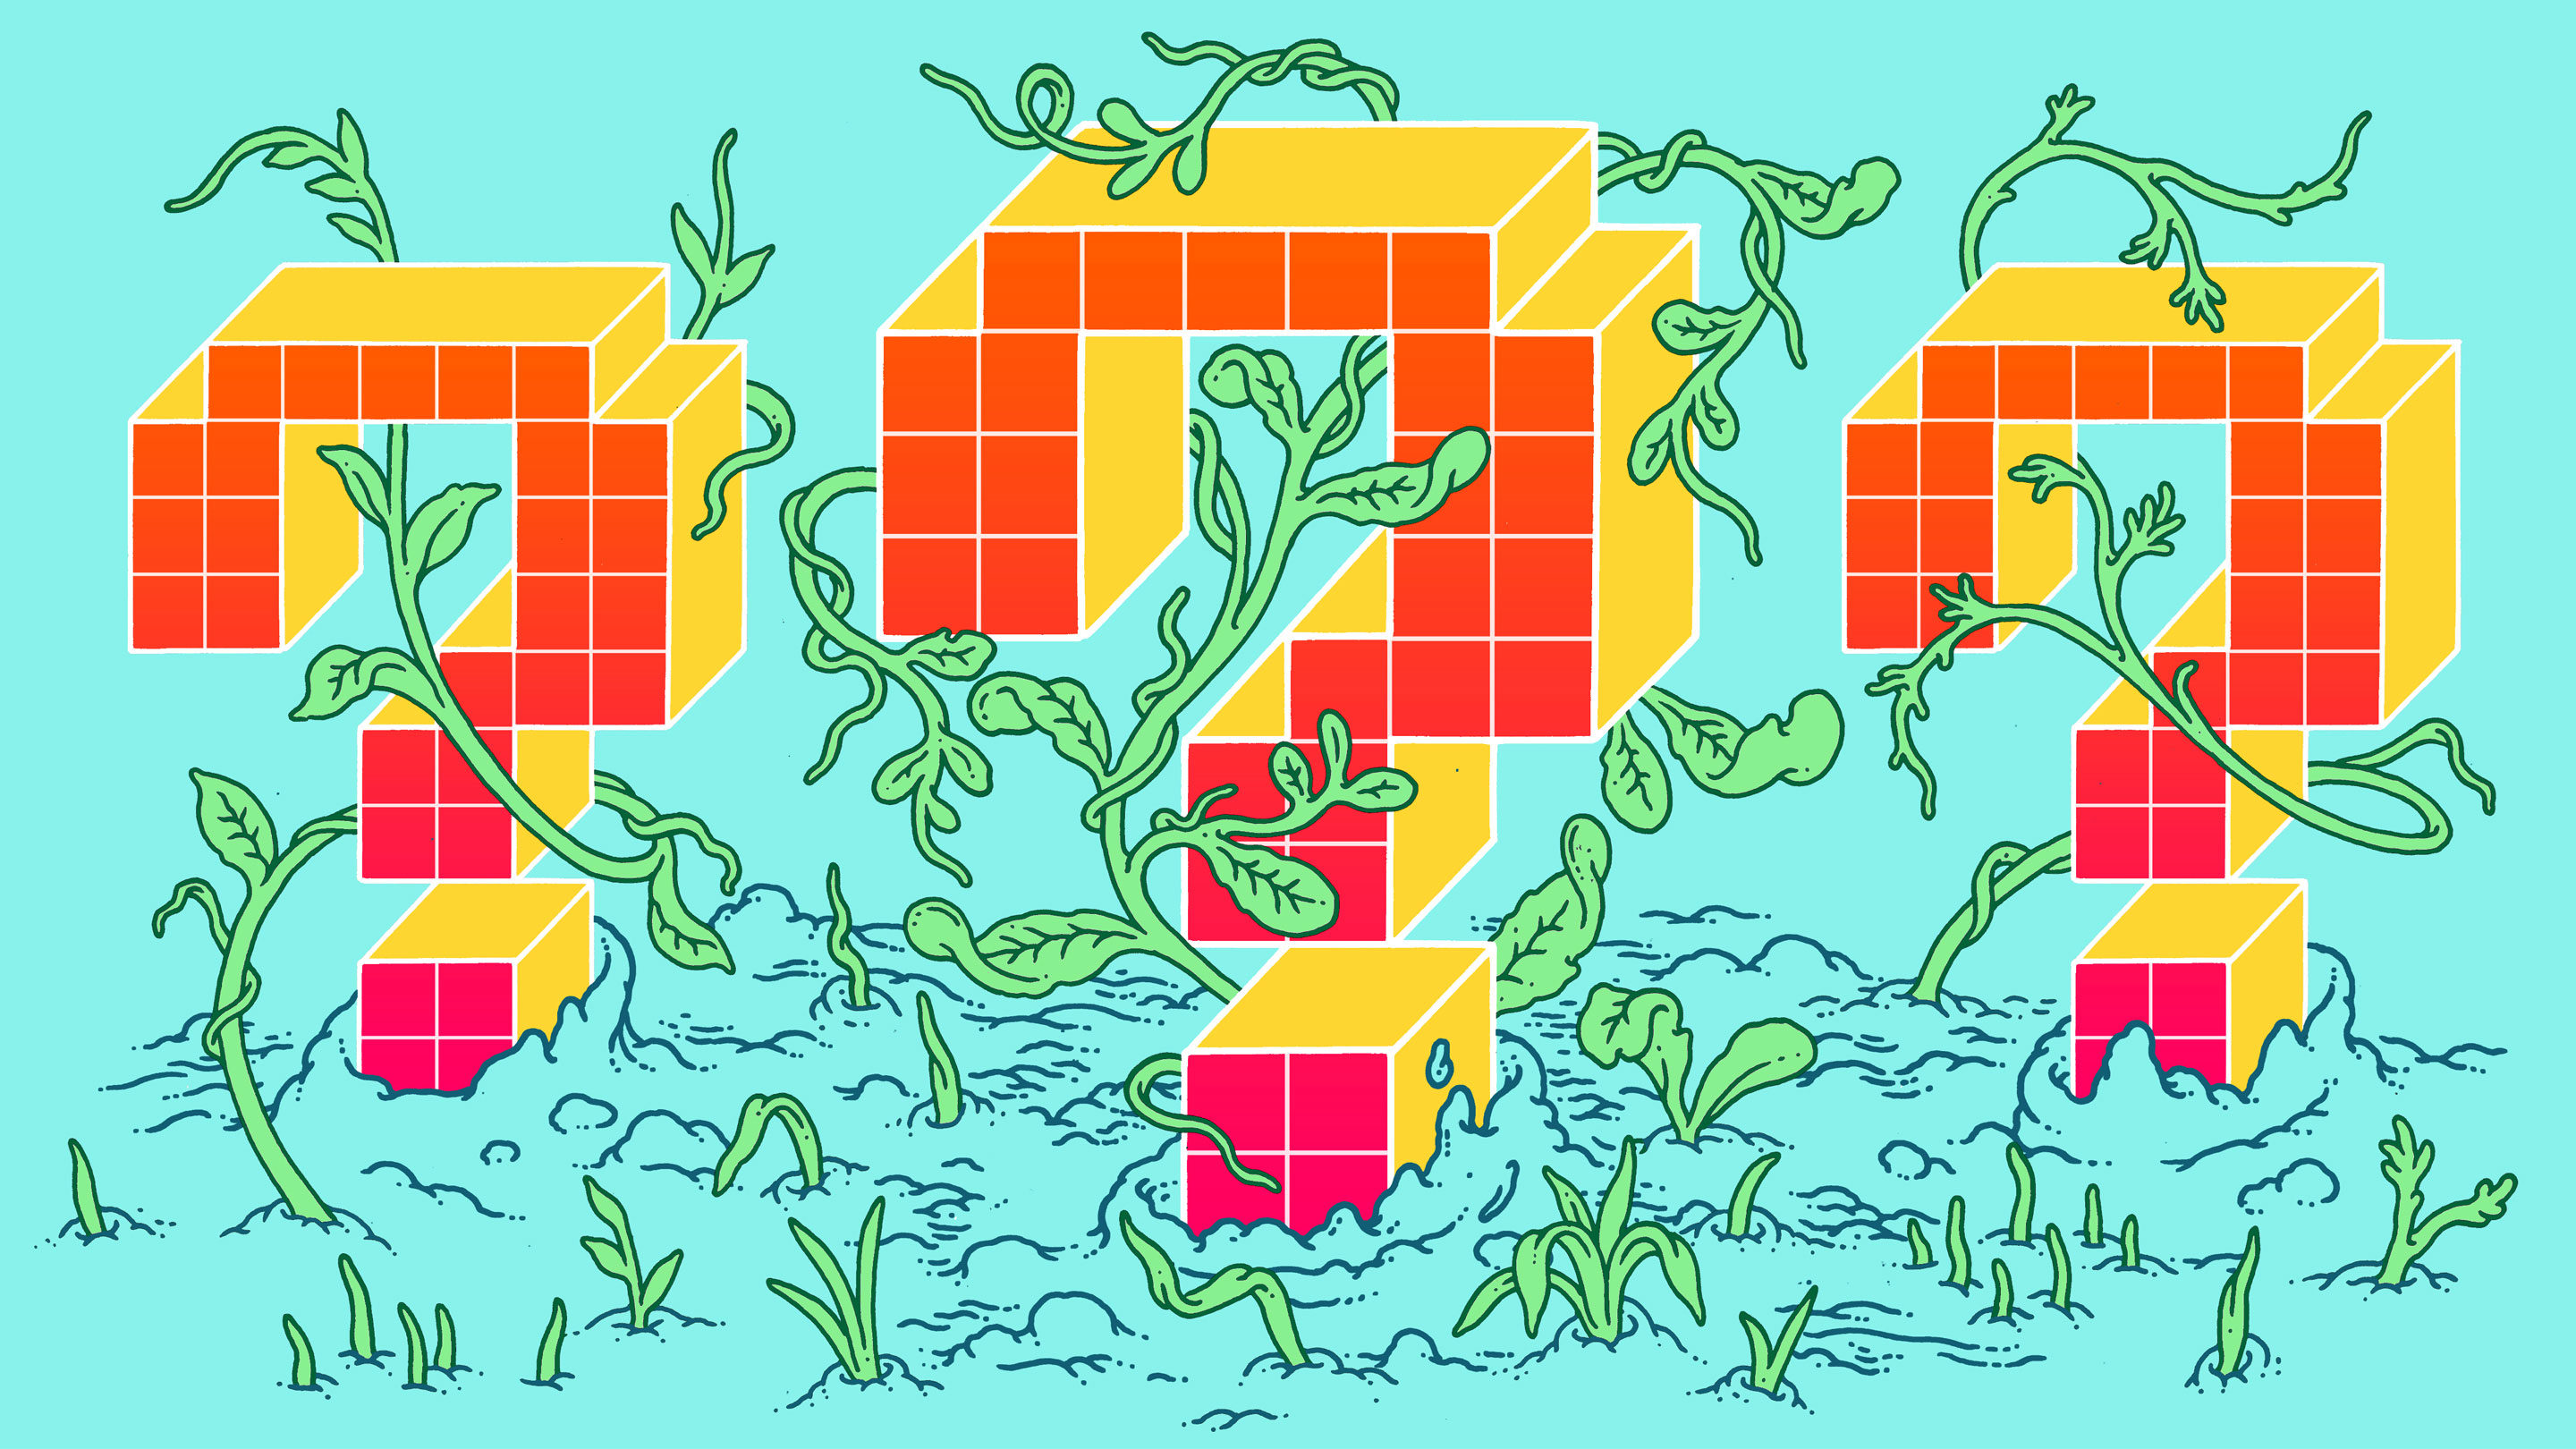 Clever Machines Learn How To Be Curious Quanta Magazine As I Set Out On A Quest Develop More Of These Types Learning Digital Question Marks Surrounded By Vines